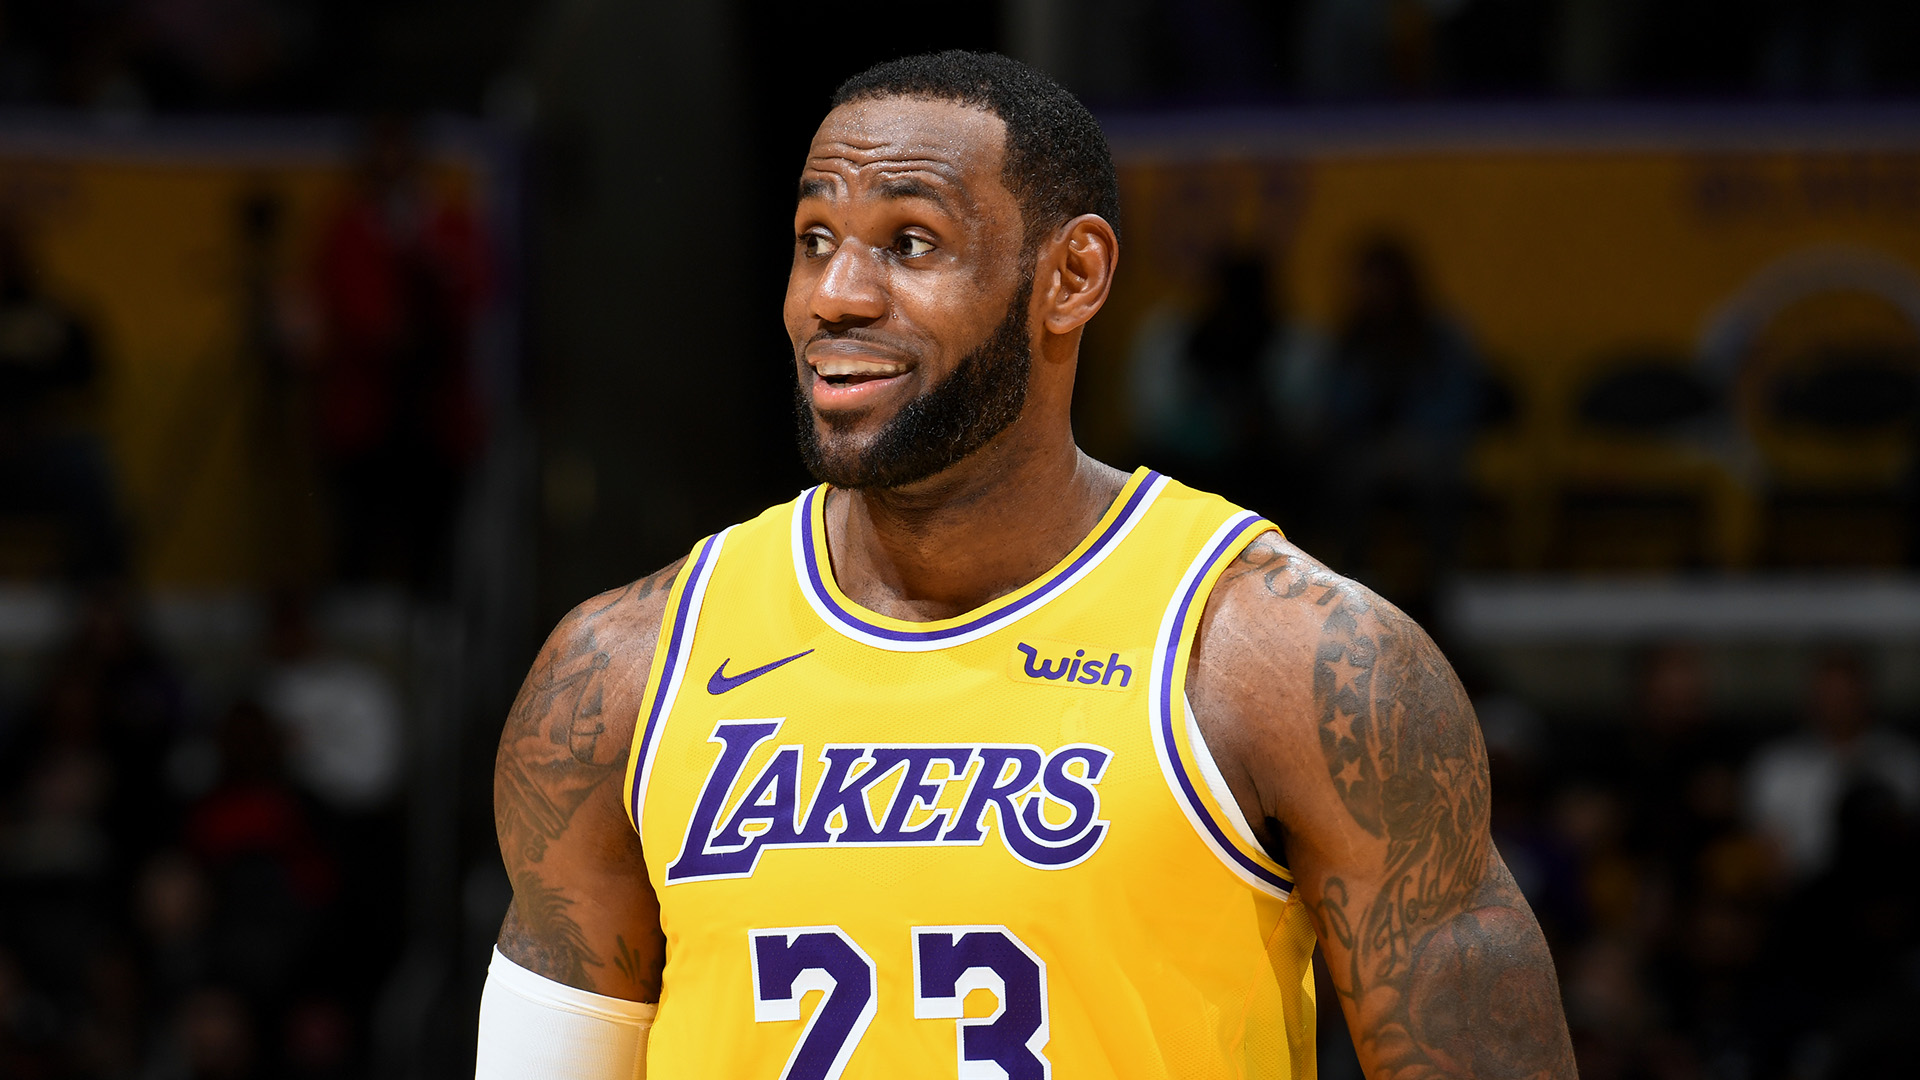 LeBron James, Lakers lead NBA merchandise sales through 1st half of 2020-21